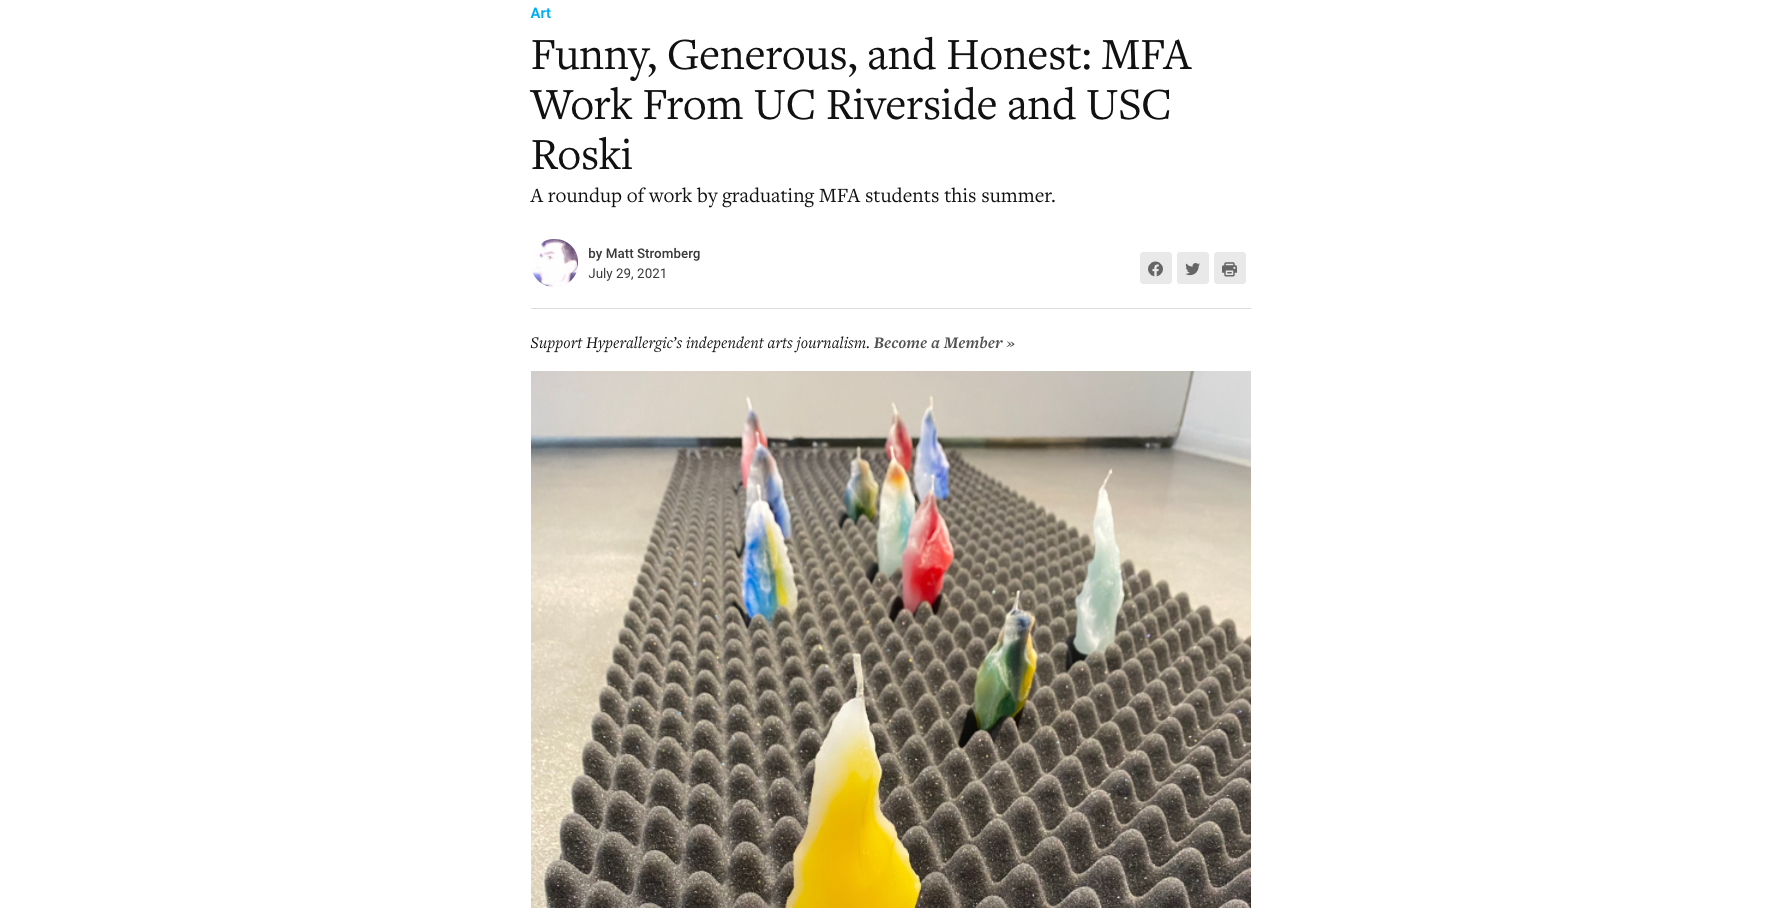 Hyperallergic – Funny, Generous, and Honest: MFA Work From UC Riverside and USC Roski